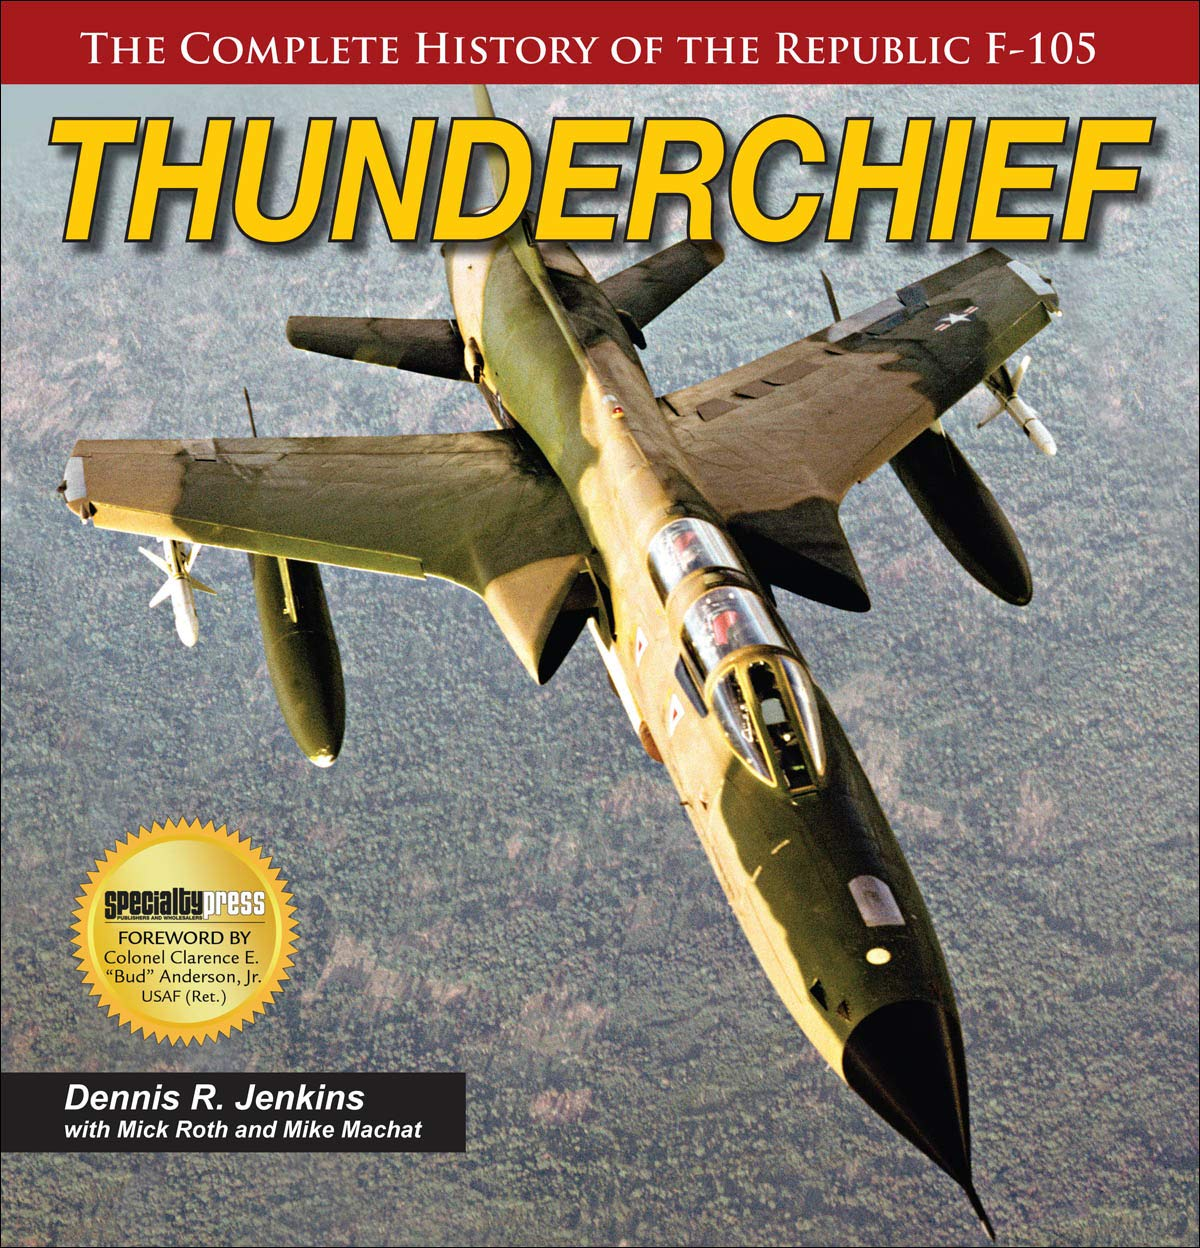 Thunderchief: The Complete History of the Republic F-105 by Specialty Press